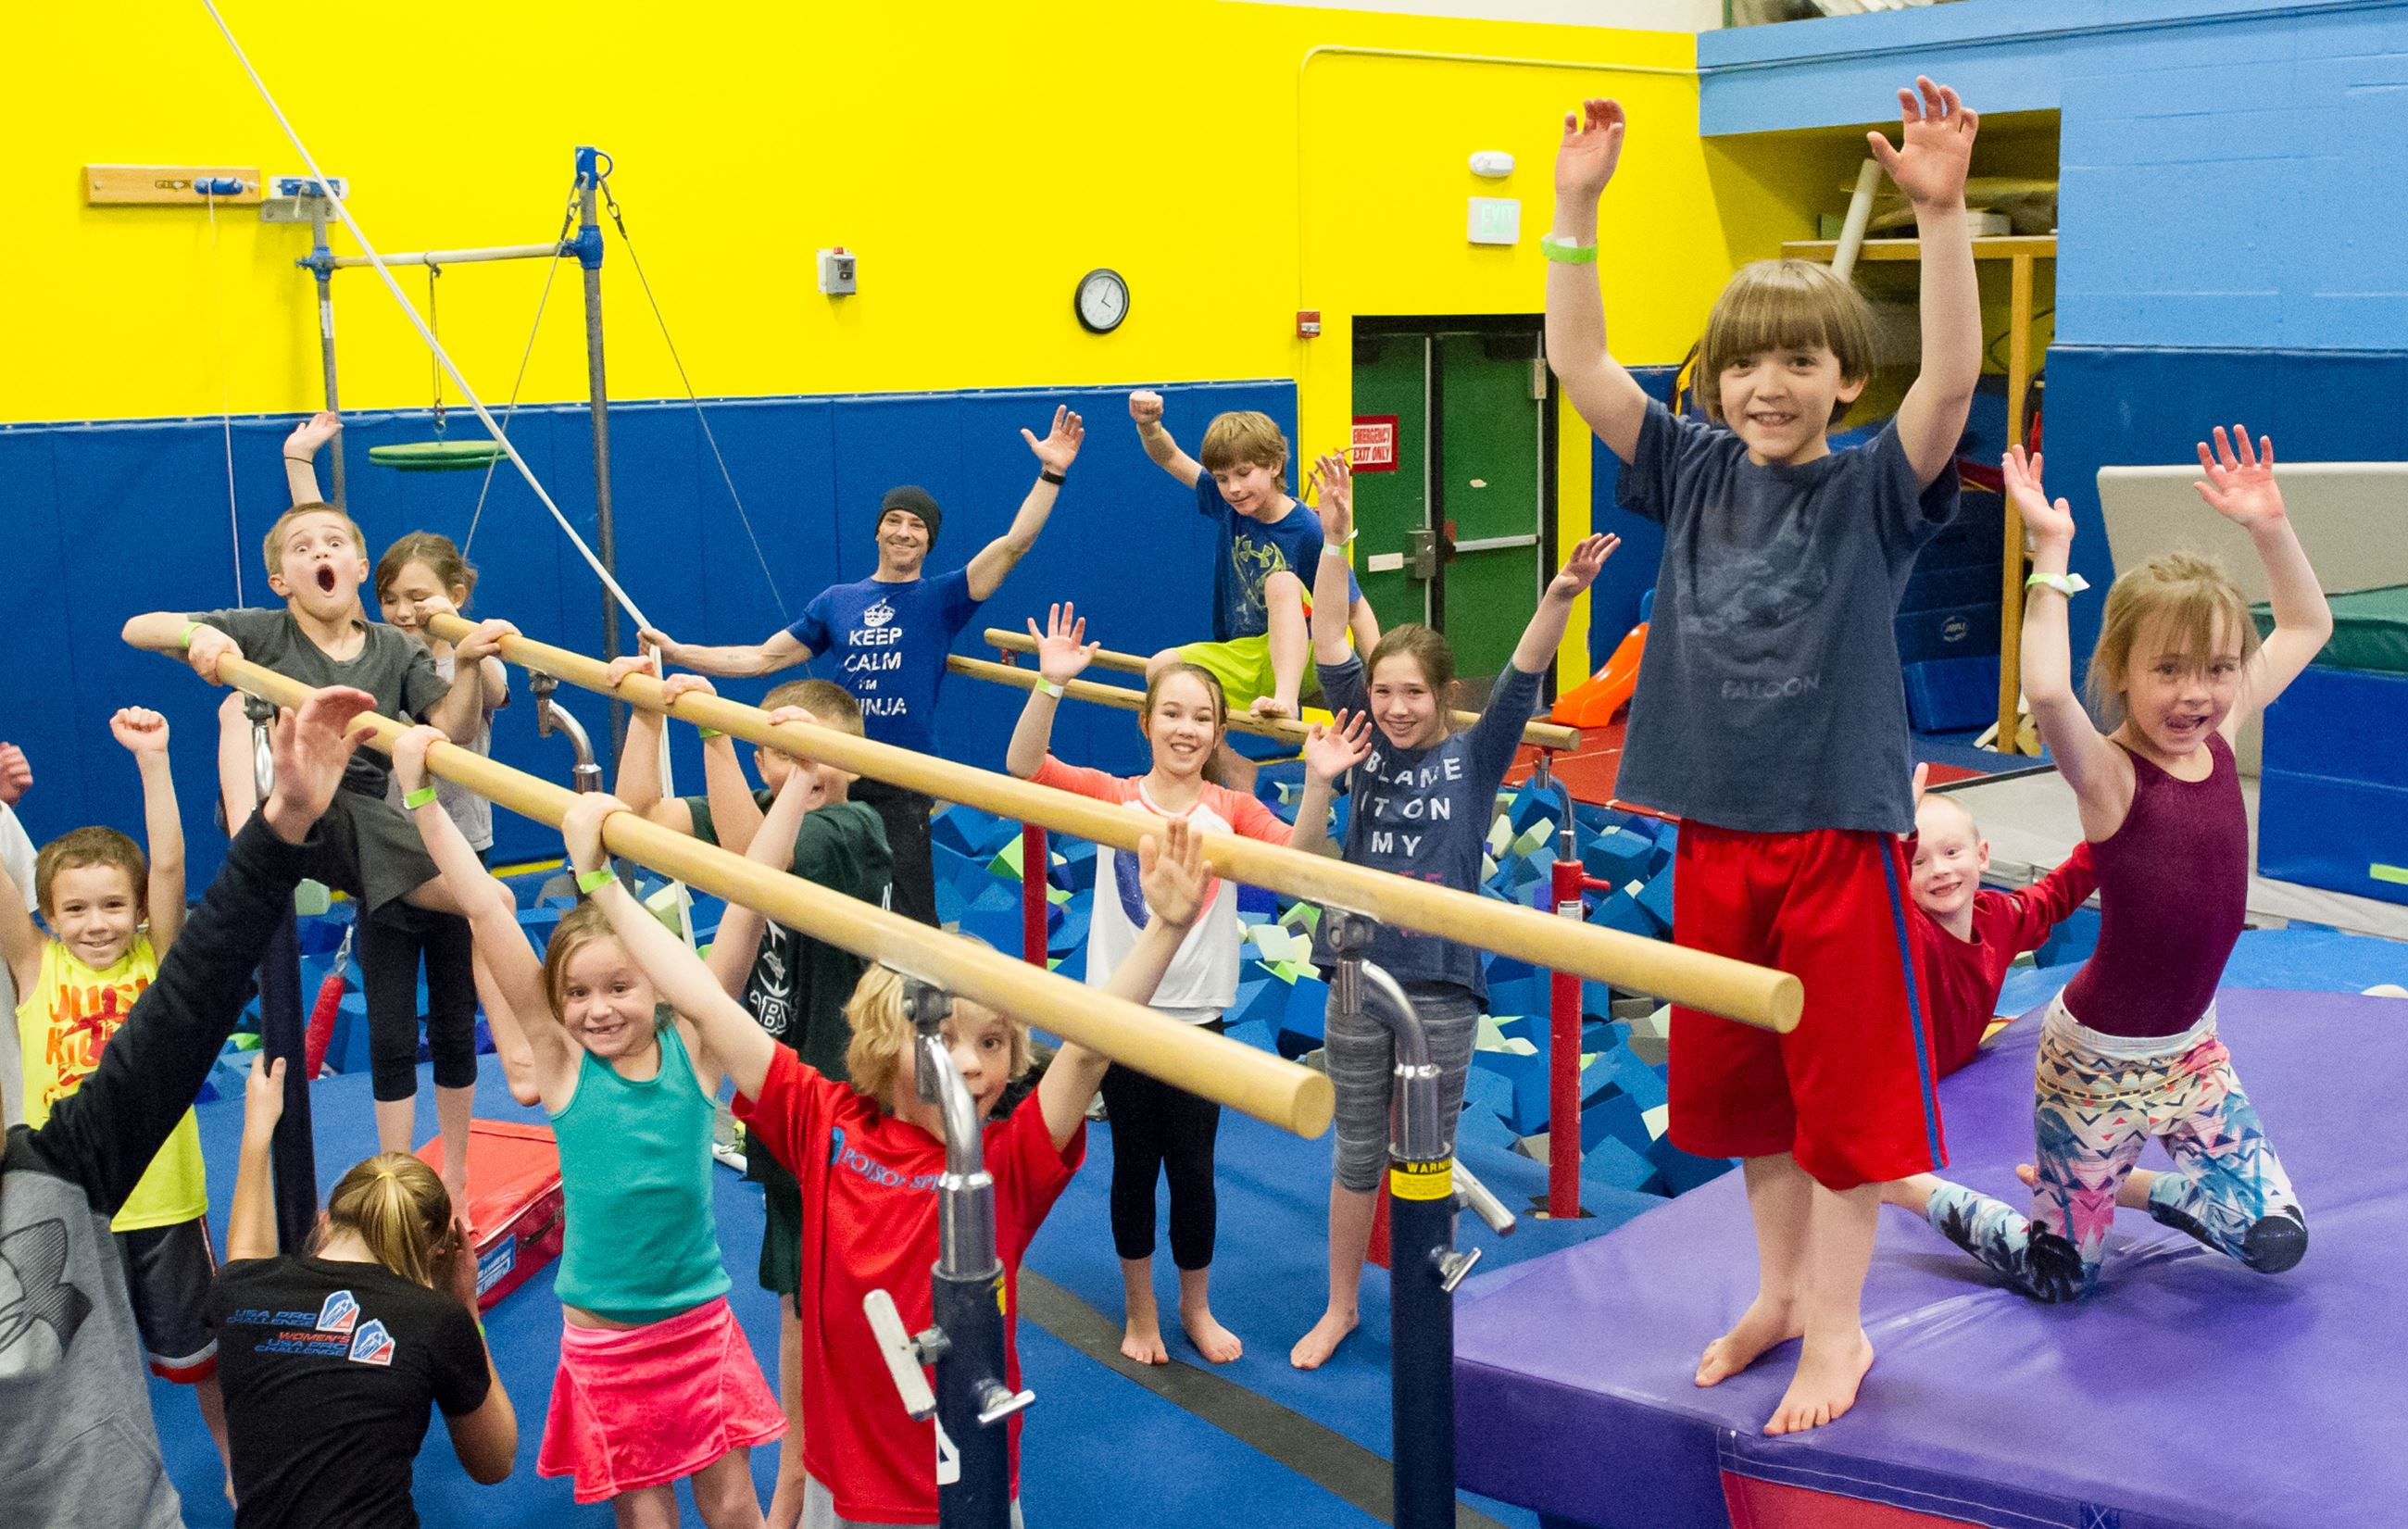 Kids Standing Around Fun Gym Equipment with Hands Raised Over Their Heads